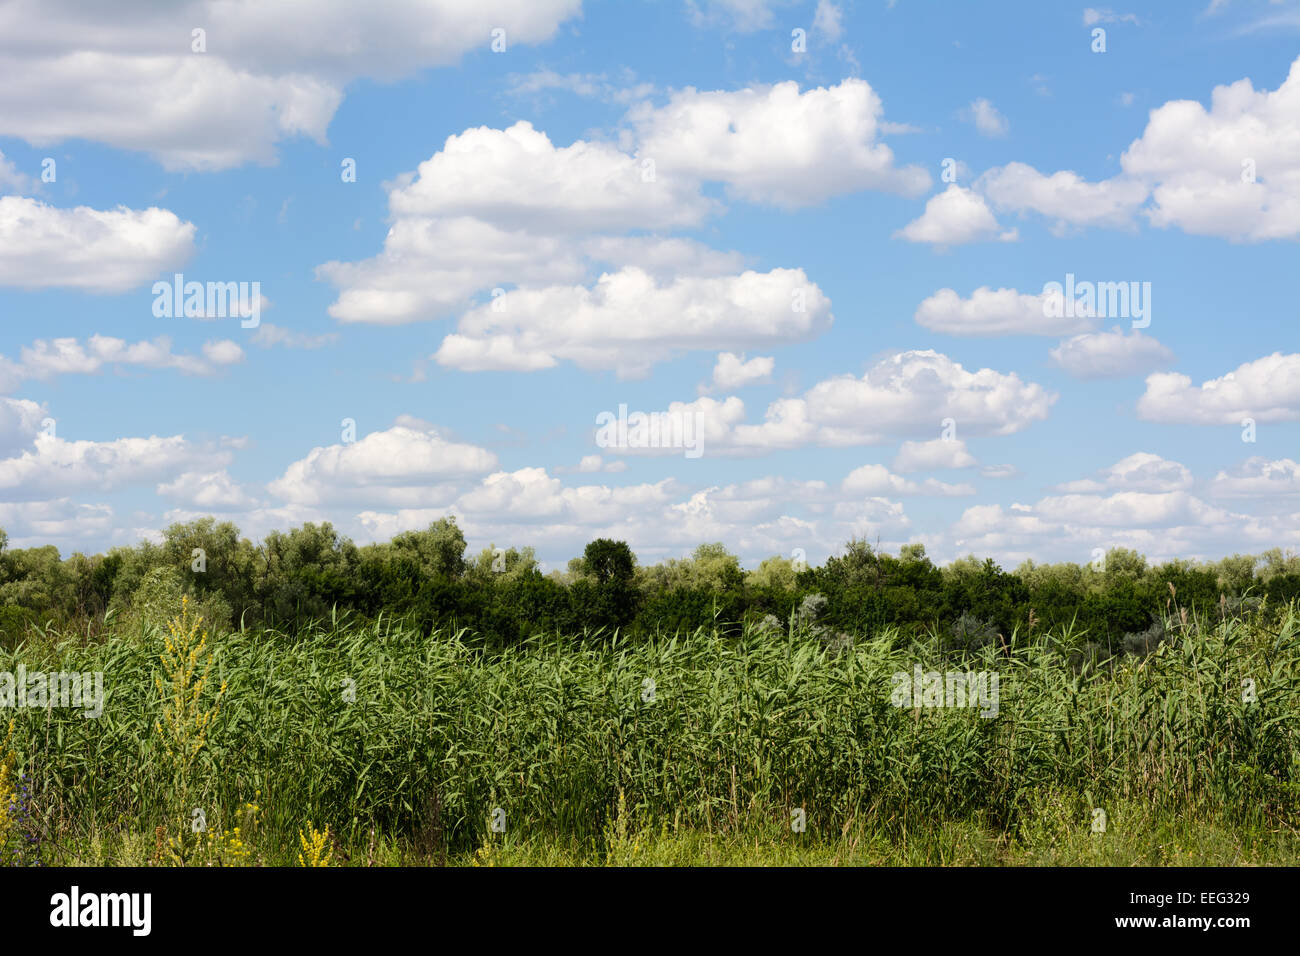 Sky with clouds over the forest in the summer - Stock Image